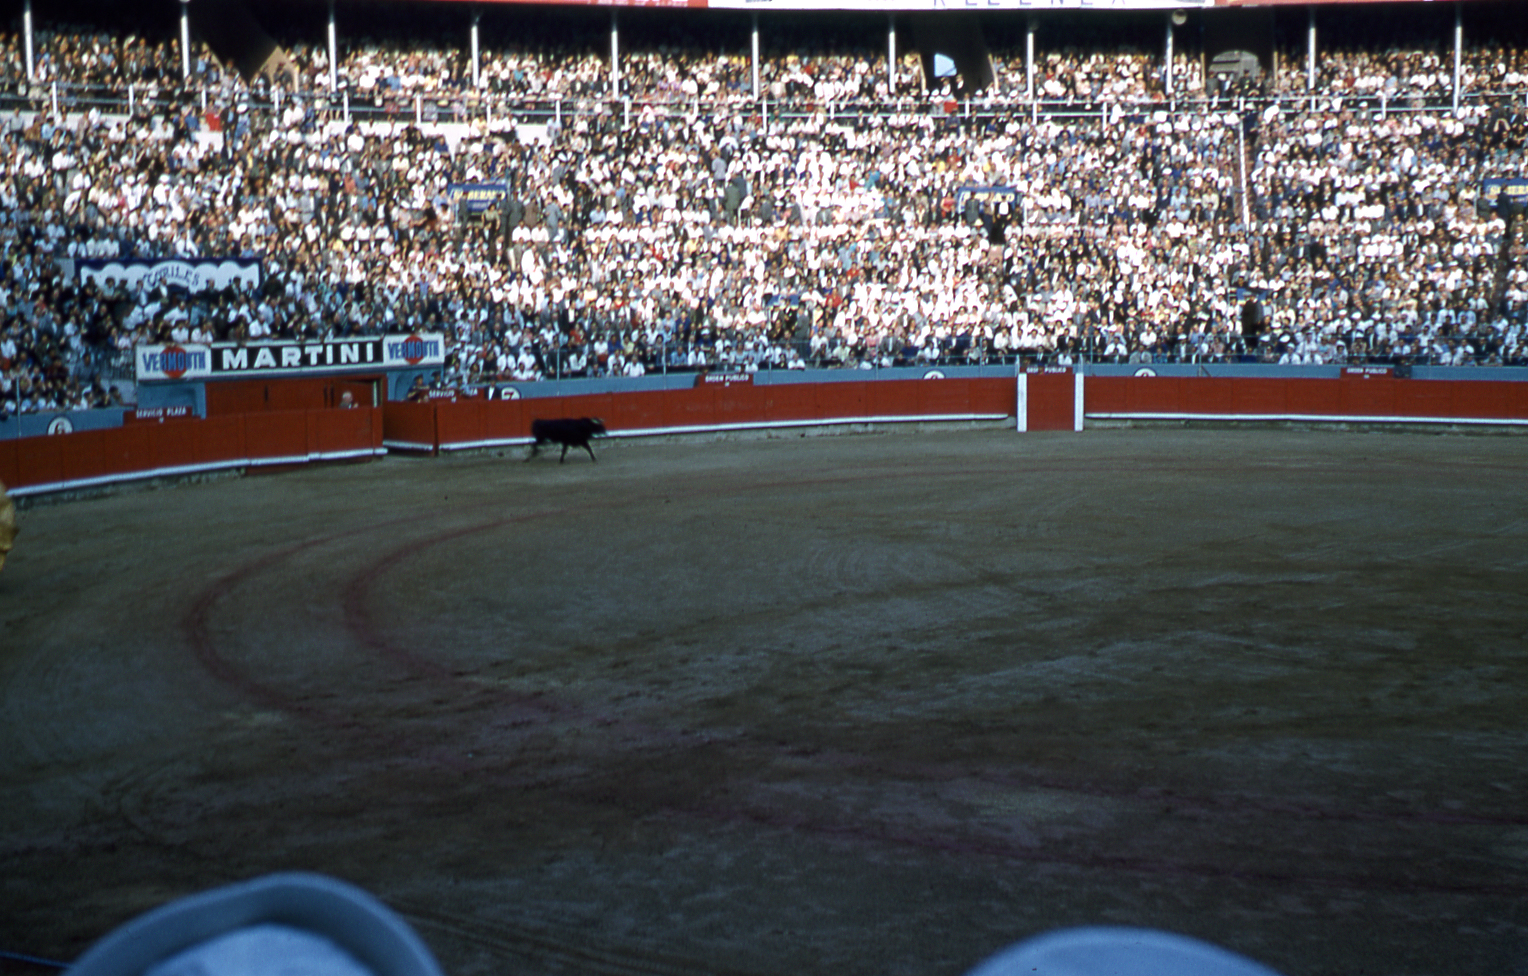 21-jun60-barcelona-bullfights